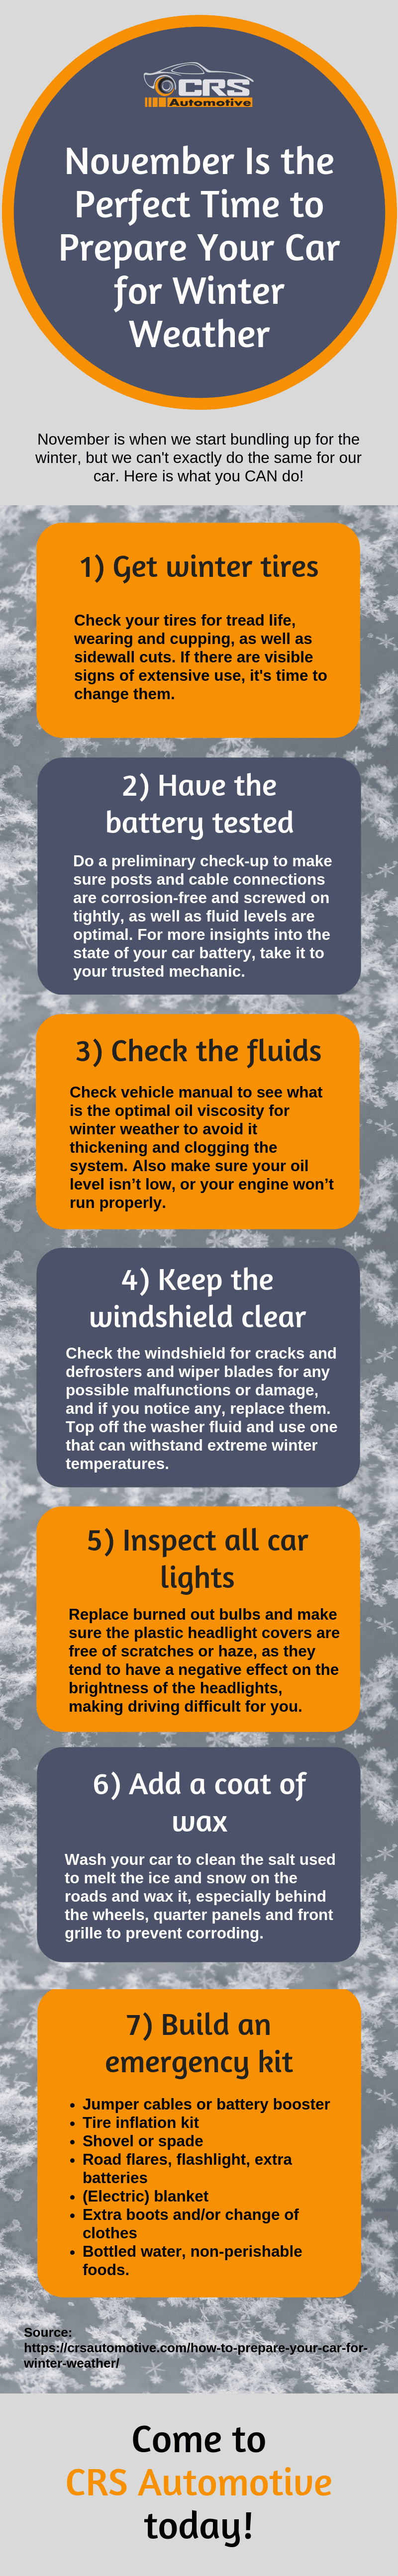 November Is the Perfect Time to Prepare Your Car for Winter Weather Infographic